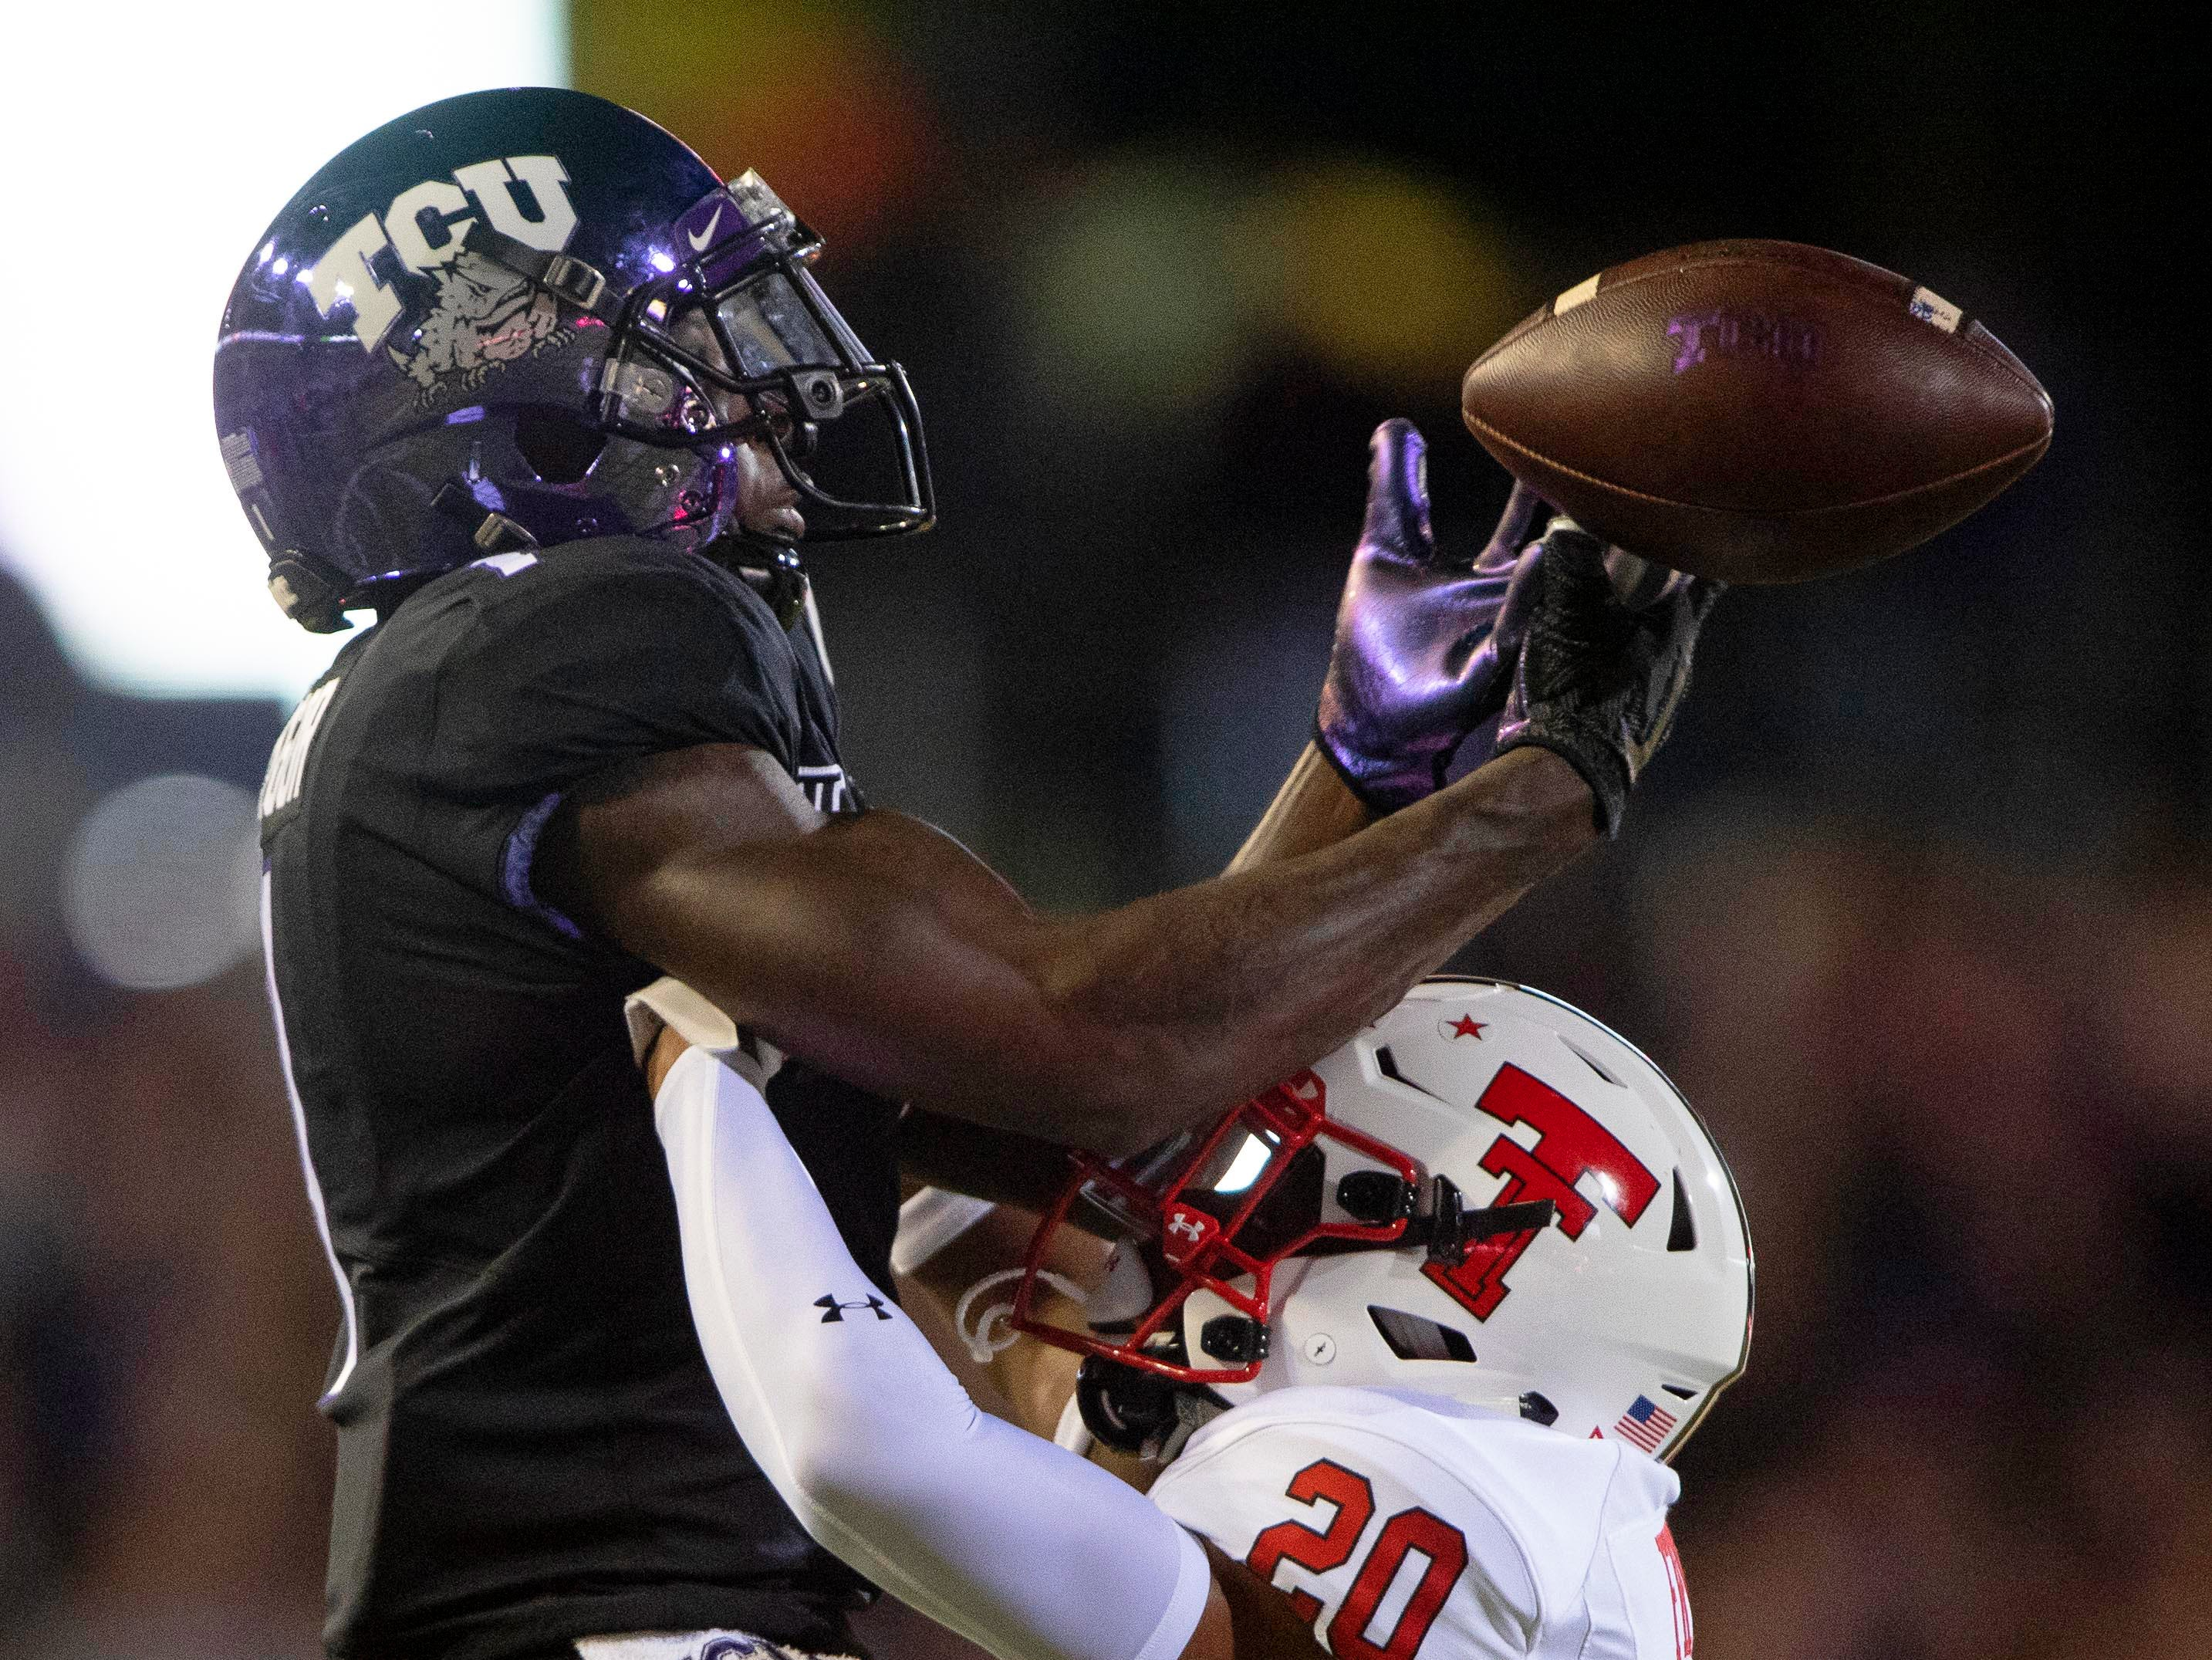 Texas Tech Red Raiders defensive back Adrian Frye (20) defends against TCU Horned Frogs wide receiver Jalen Reagor (1) during the second half at Amon G. Carter Stadium.